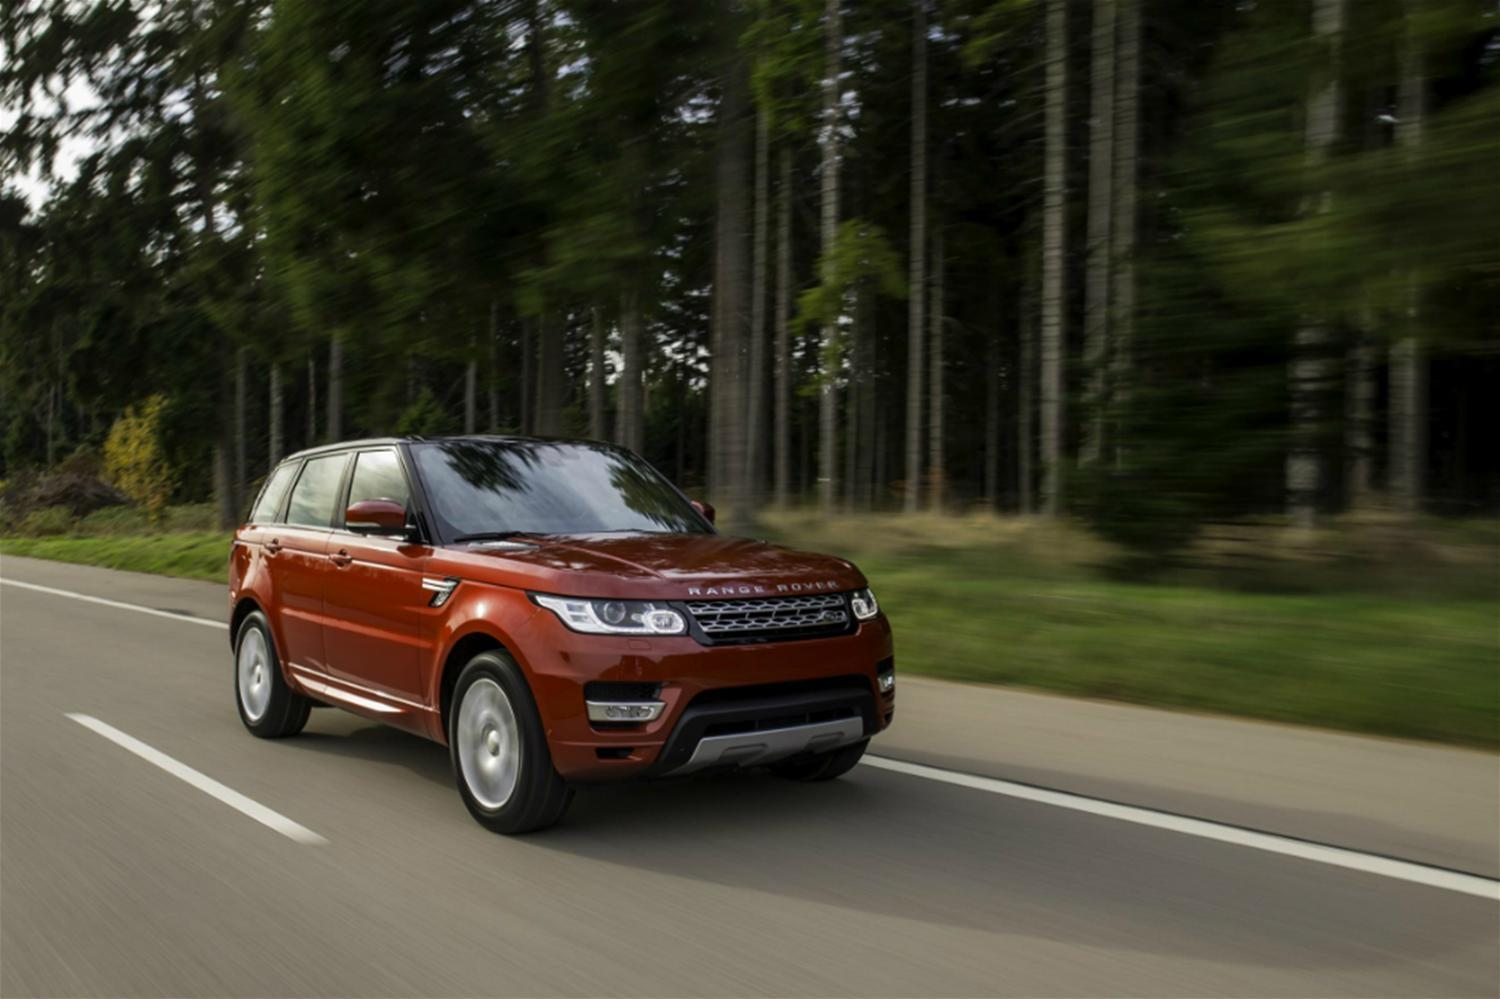 Range Rover Sport Wins Another 4x4 Award